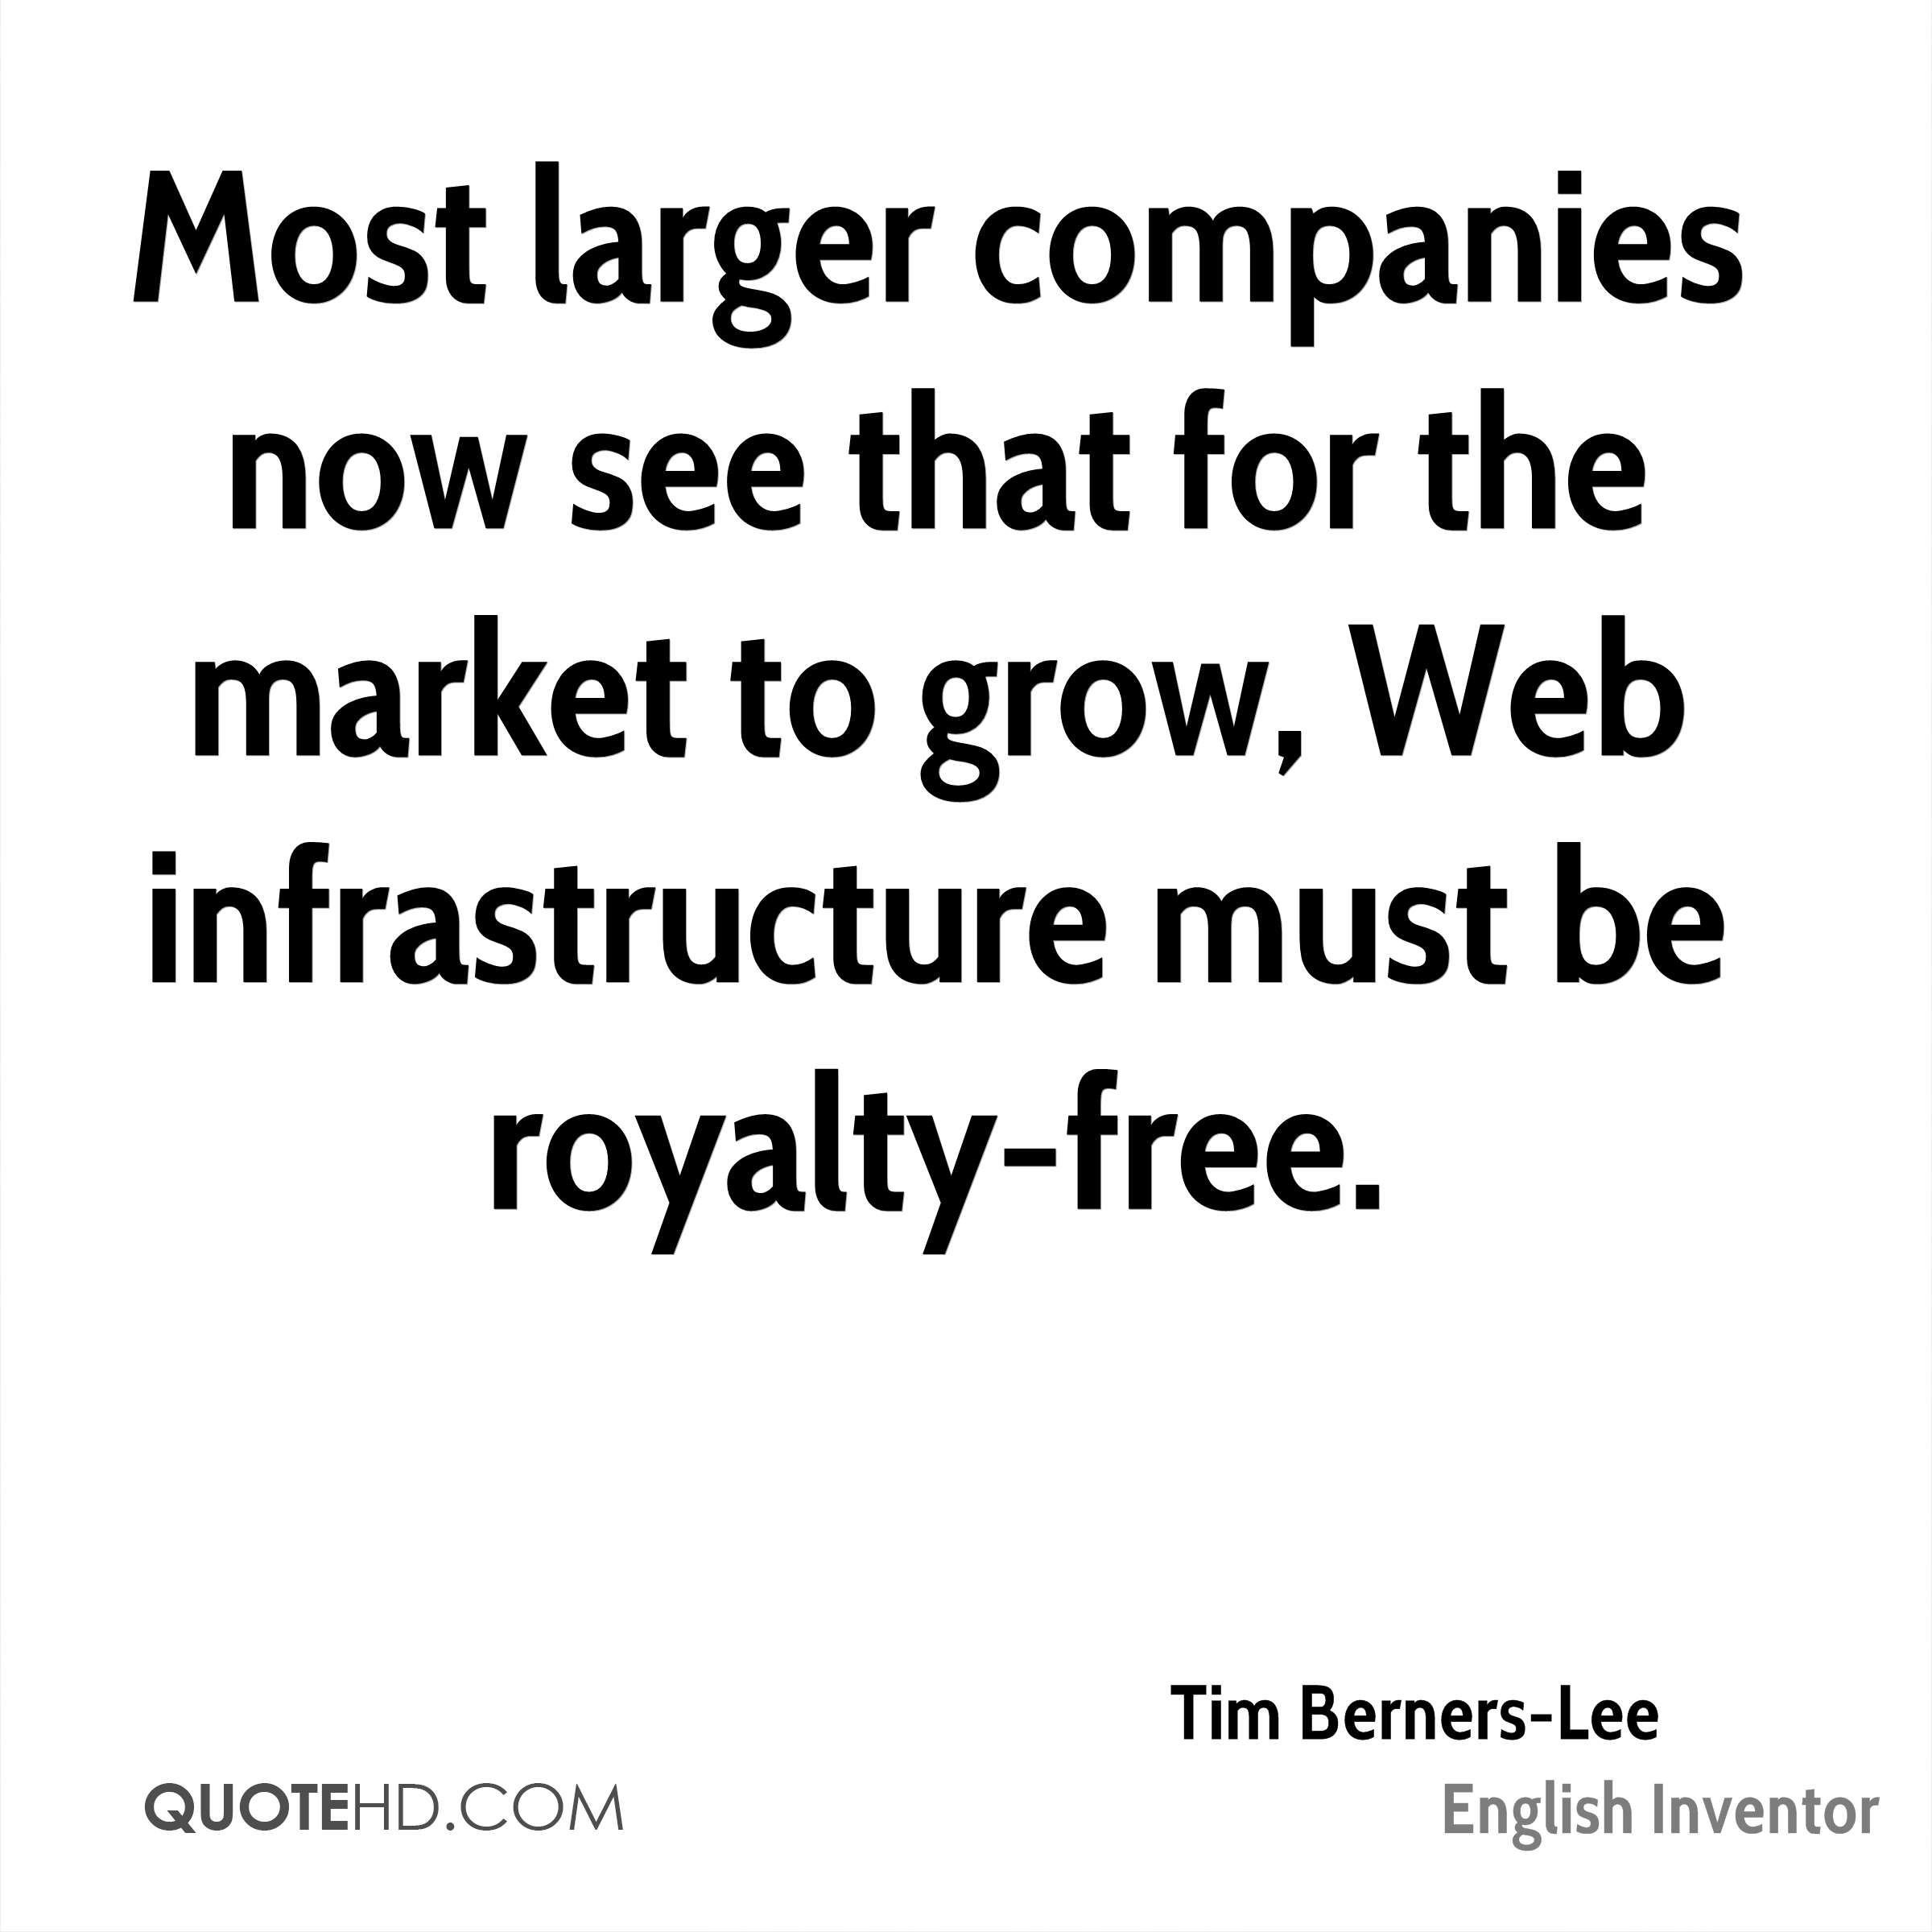 Most larger companies now see that for the market to grow, Web infrastructure must be royalty-free.